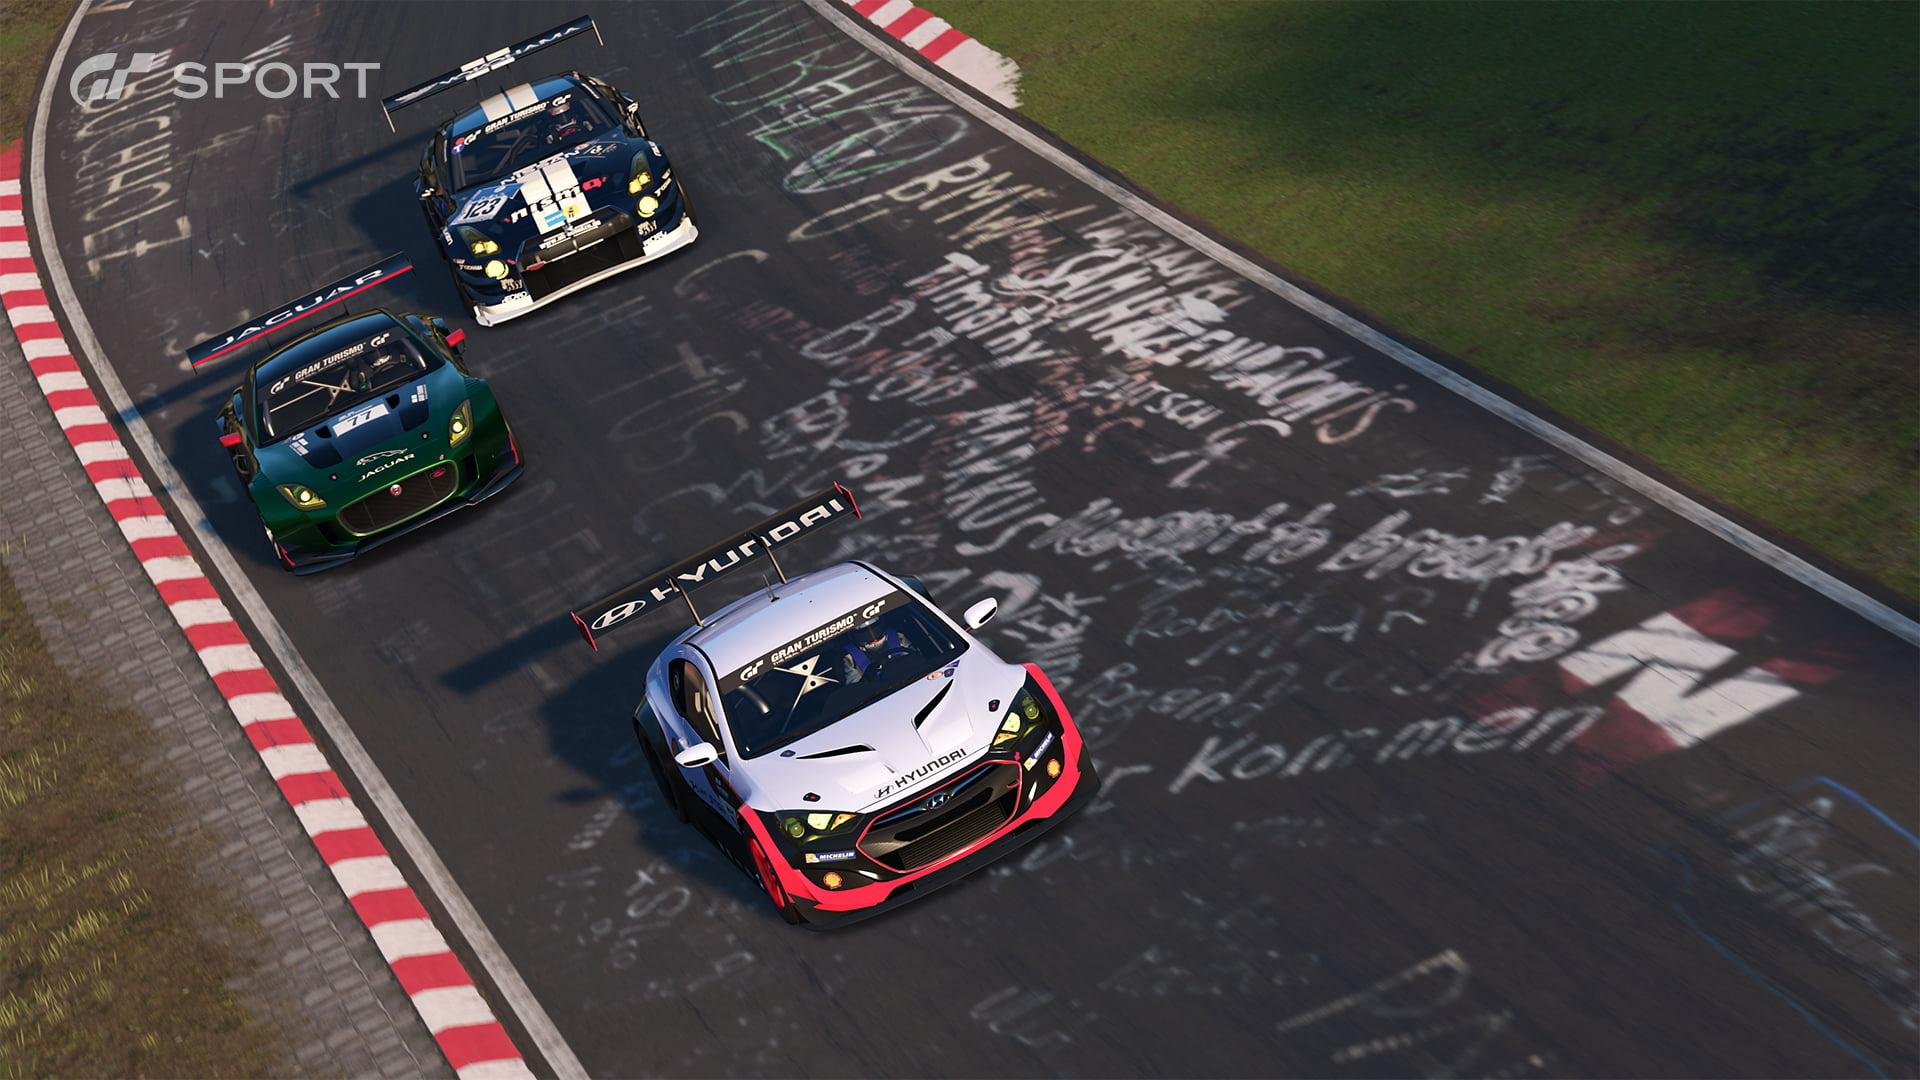 There Will Be A Gran Turismo Sport LAN Event At The Circuit De Barcelona Catalunya In 2018